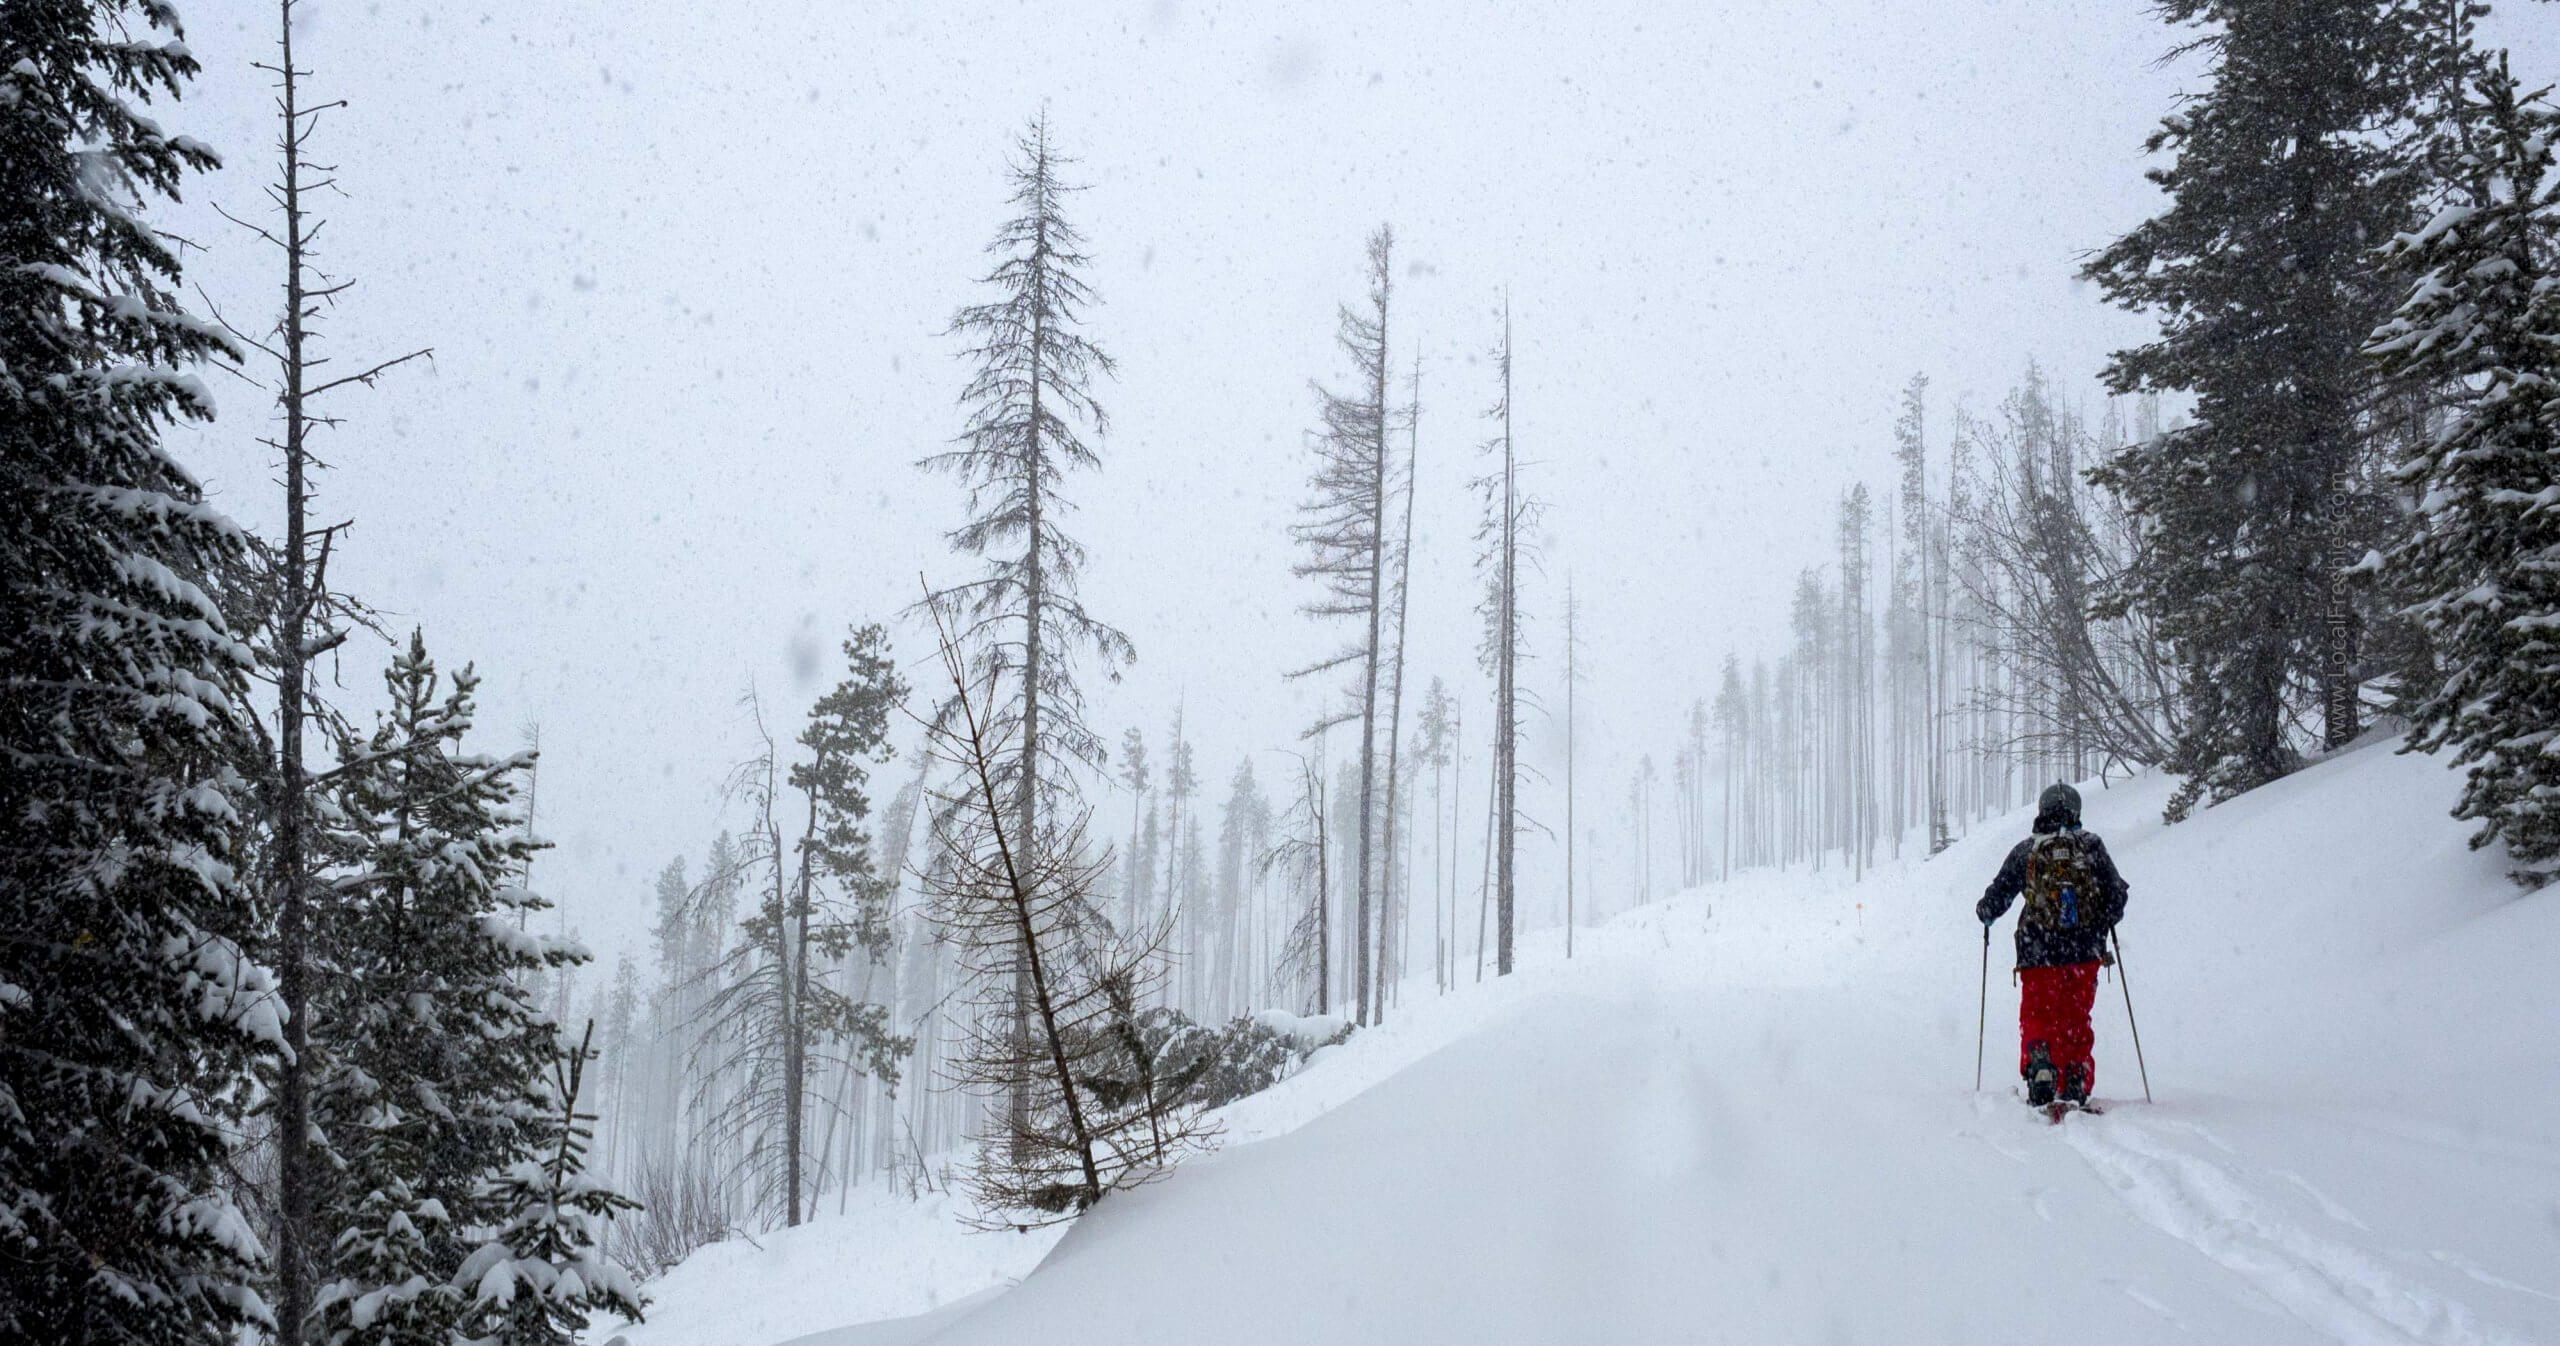 skier in backcountry snow